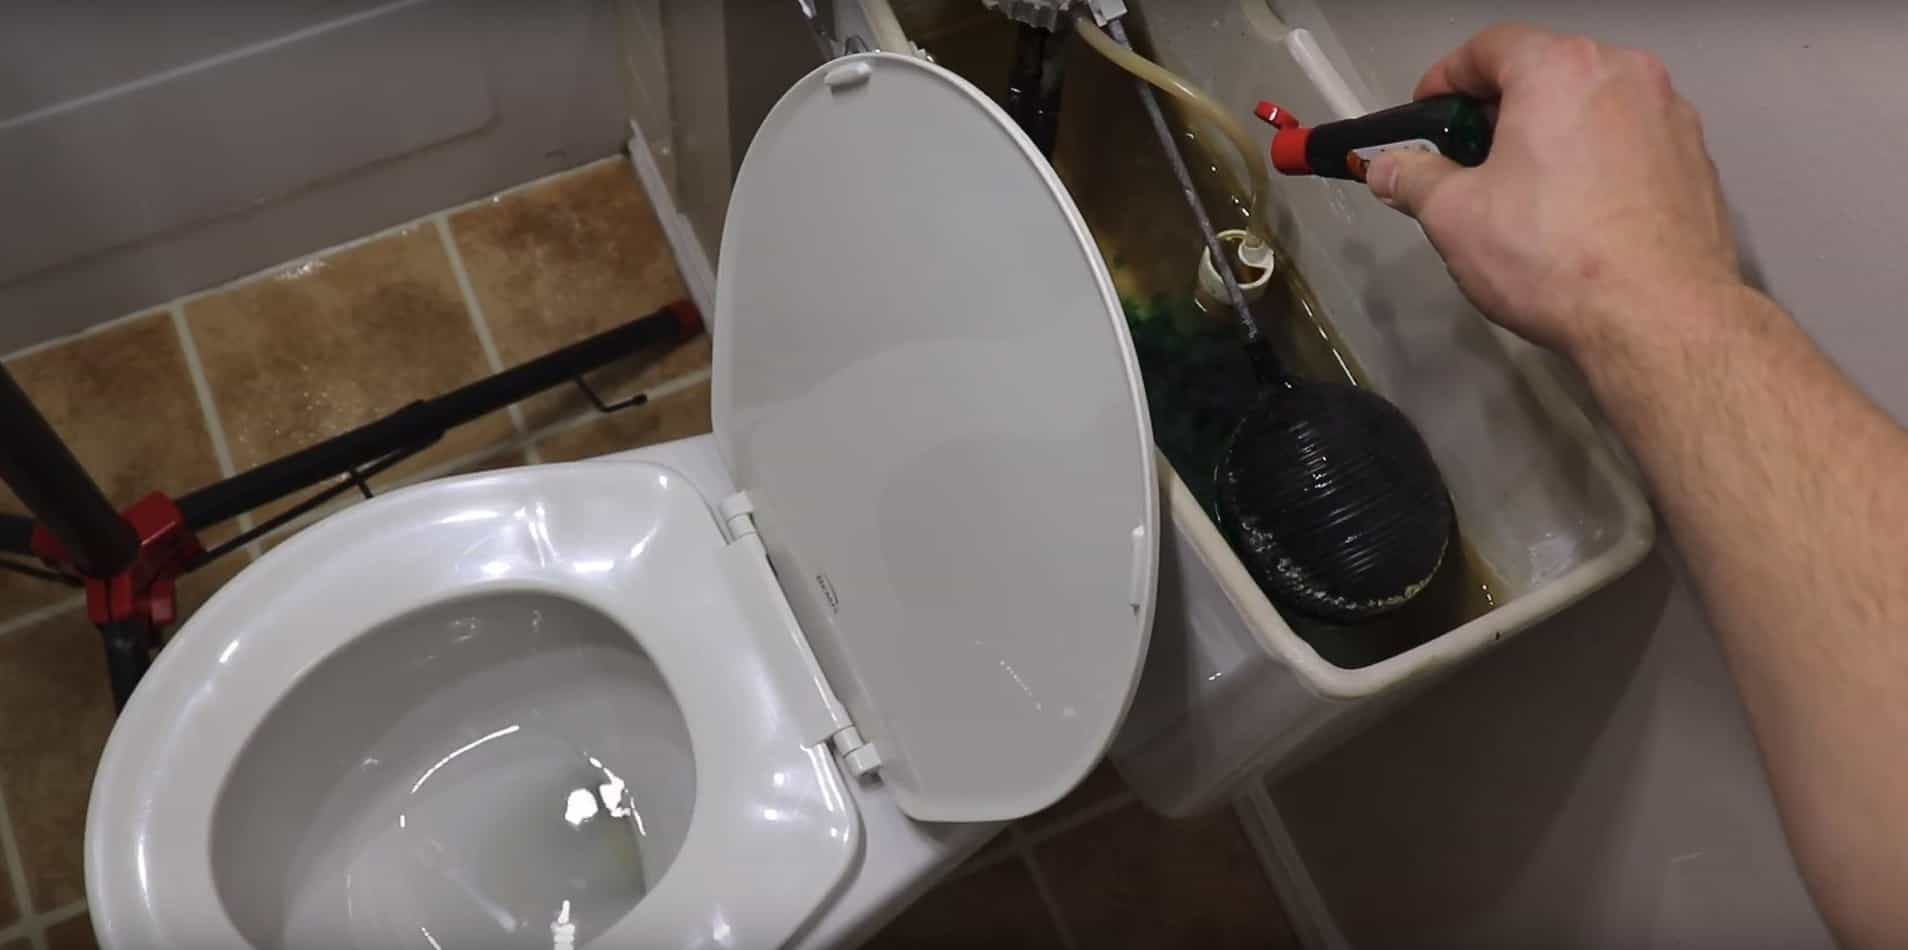 toilet bowl flapper replacement. Add food coloring to tank Toilet Flapper Replacement  Pros DIY